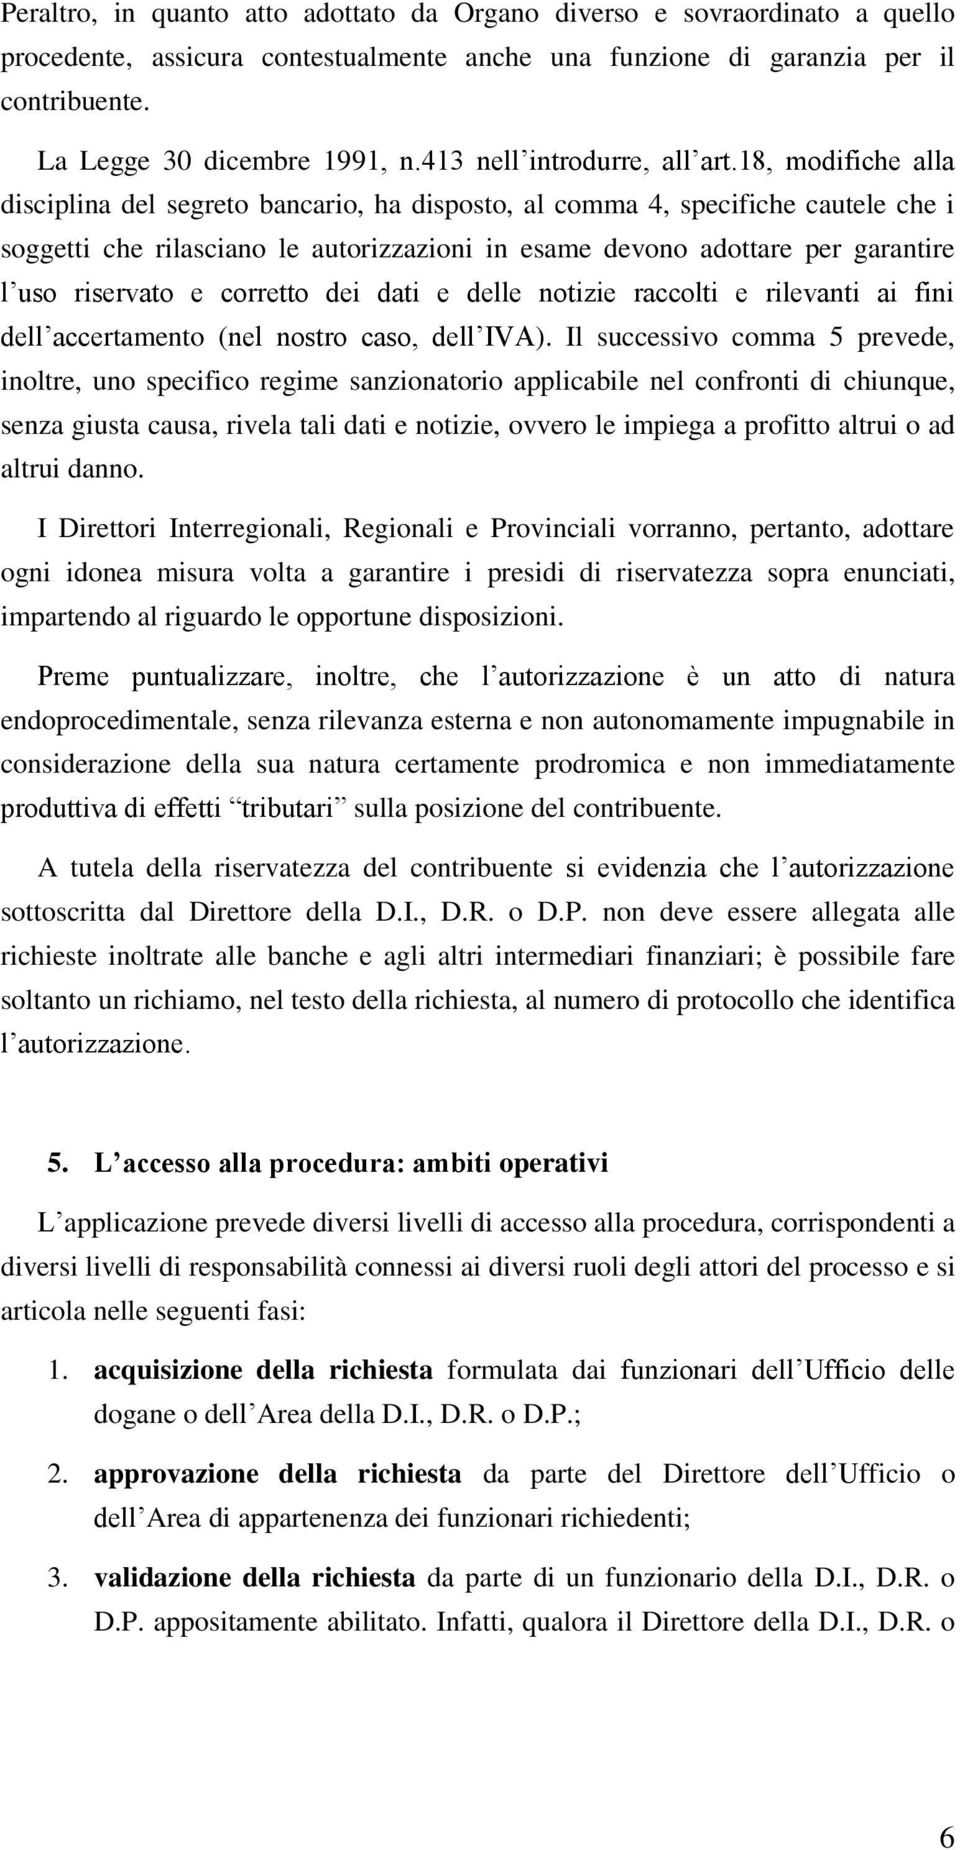 18, modifiche alla disciplina del segreto bancario, ha disposto, al comma 4, specifiche cautele che i soggetti che rilasciano le autorizzazioni in esame devono adottare per garantire l uso riservato